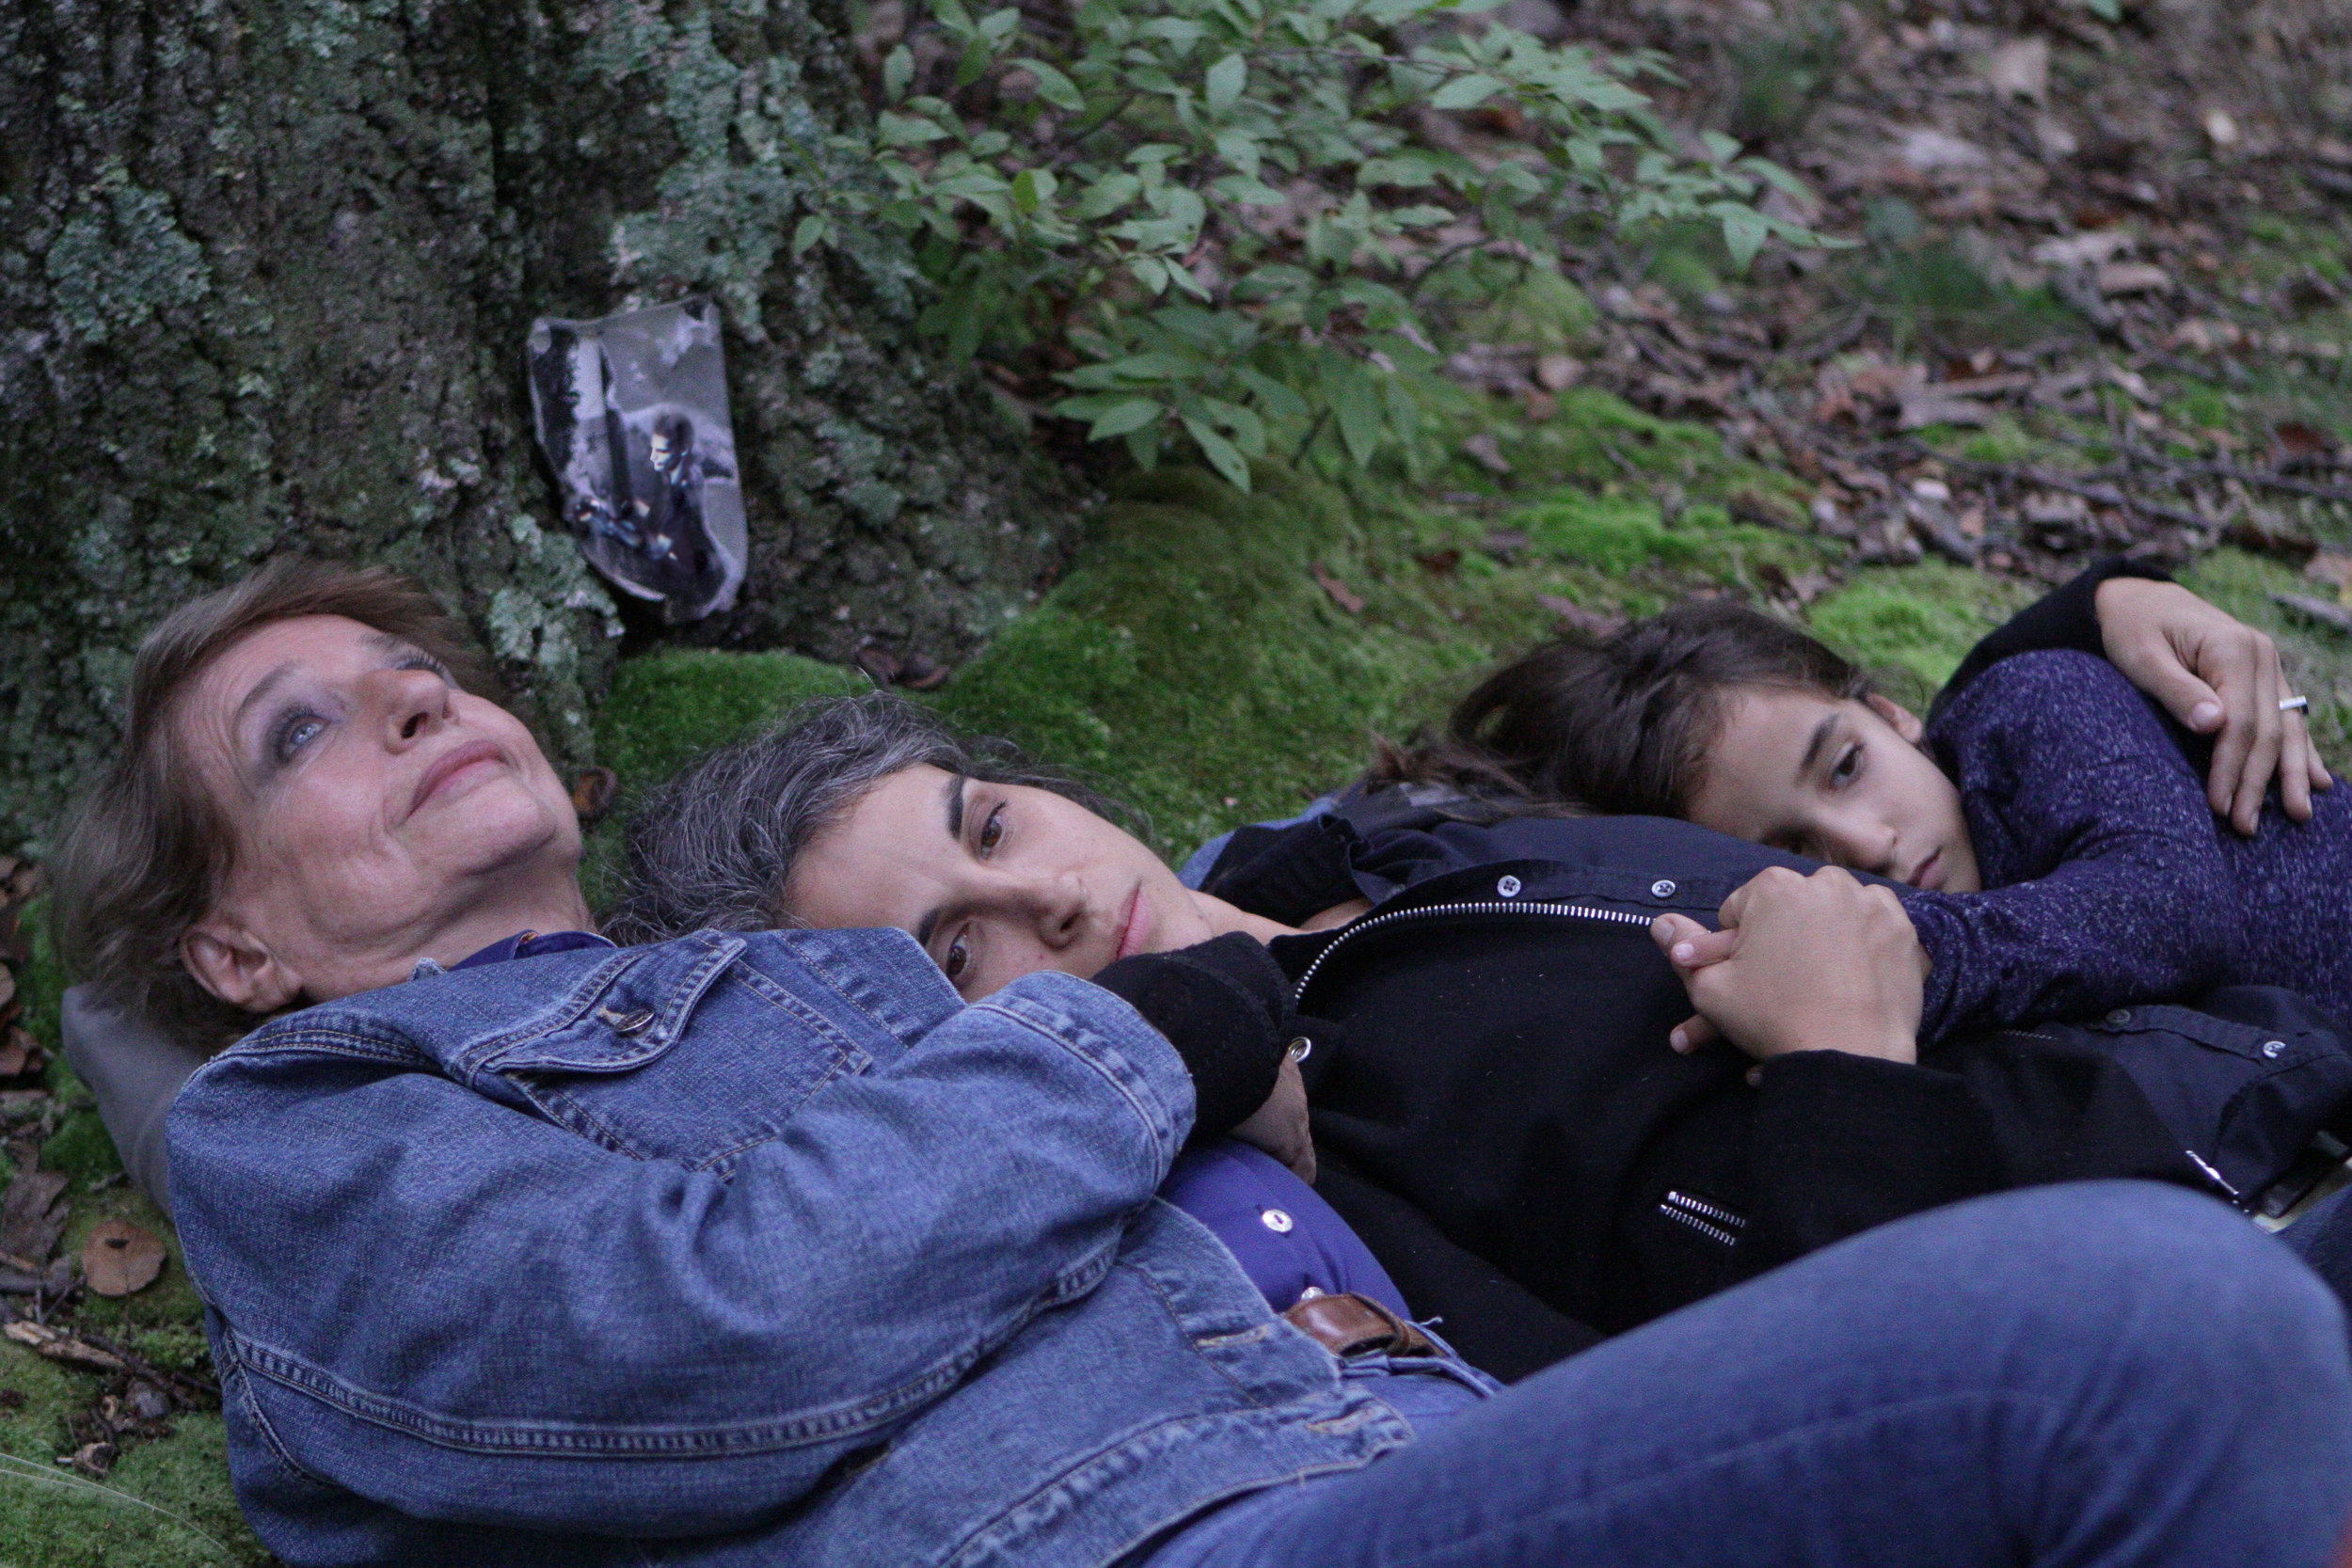 """Filmmaker magazine - A Place of Absence follows the director's journey with the Caravan of Mothers of Missing Migrants, Central American women desperately searching for sons and daughters who vanished en route to the U.S. to better understand her mother's emotional turmoil in the aftermath of her uncle's disappearance during Argentina's """"Dirty War."""" Marialuisa Ernst (Director, Writer, Producer),"""